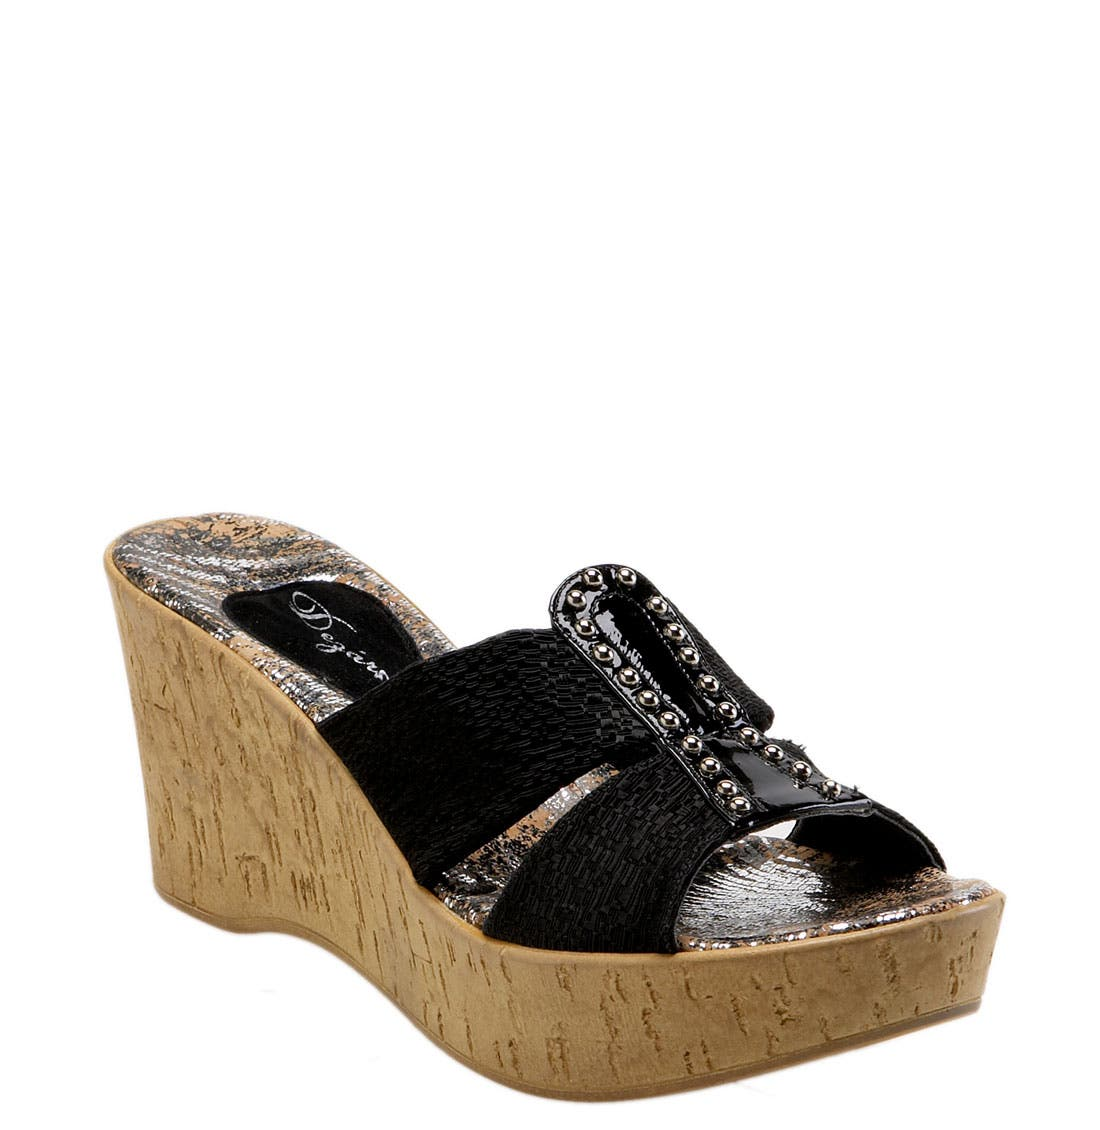 Main Image - Dezario 'Nanor' Wedge Sandal